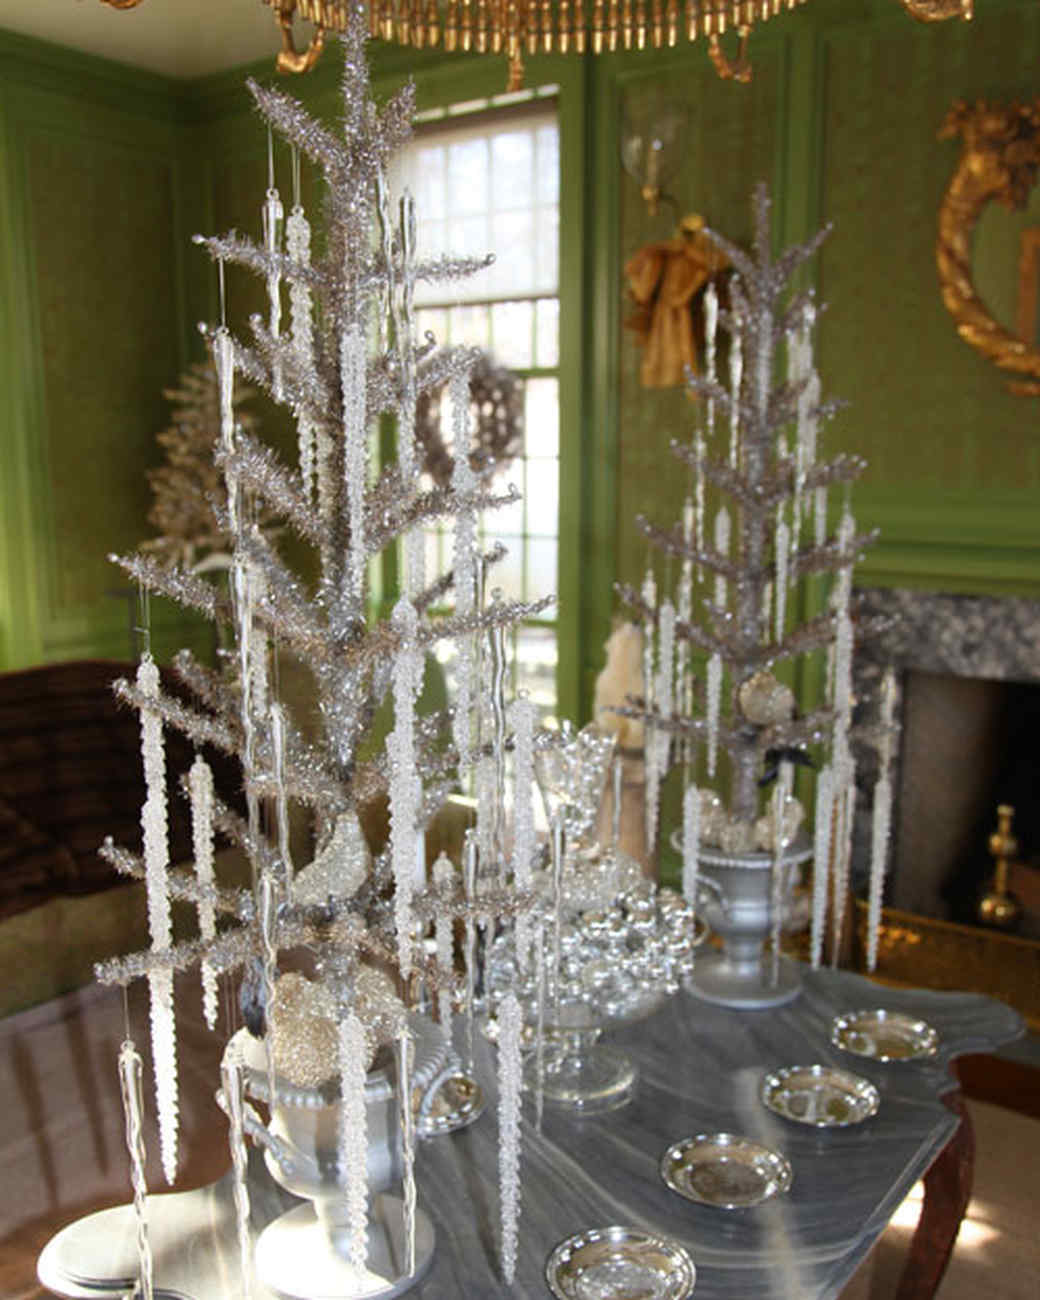 Holiday Decor Ideas Christmas: Martha's Holiday Decorating Ideas